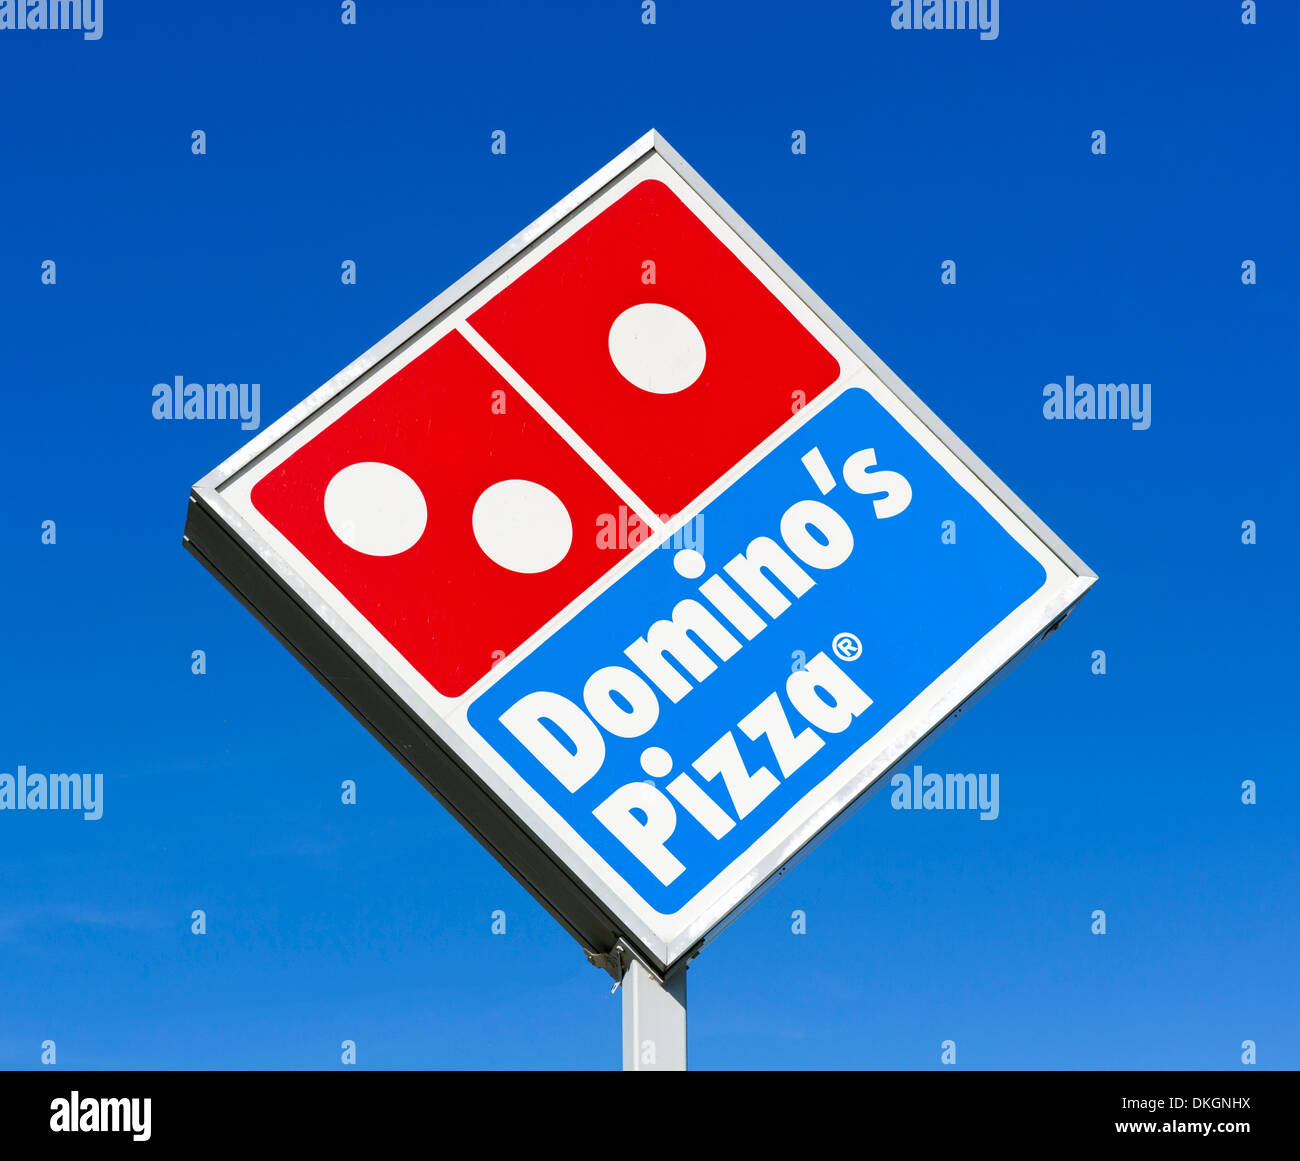 Domino's Pizza sign, Central Florida, USA Stock Photo